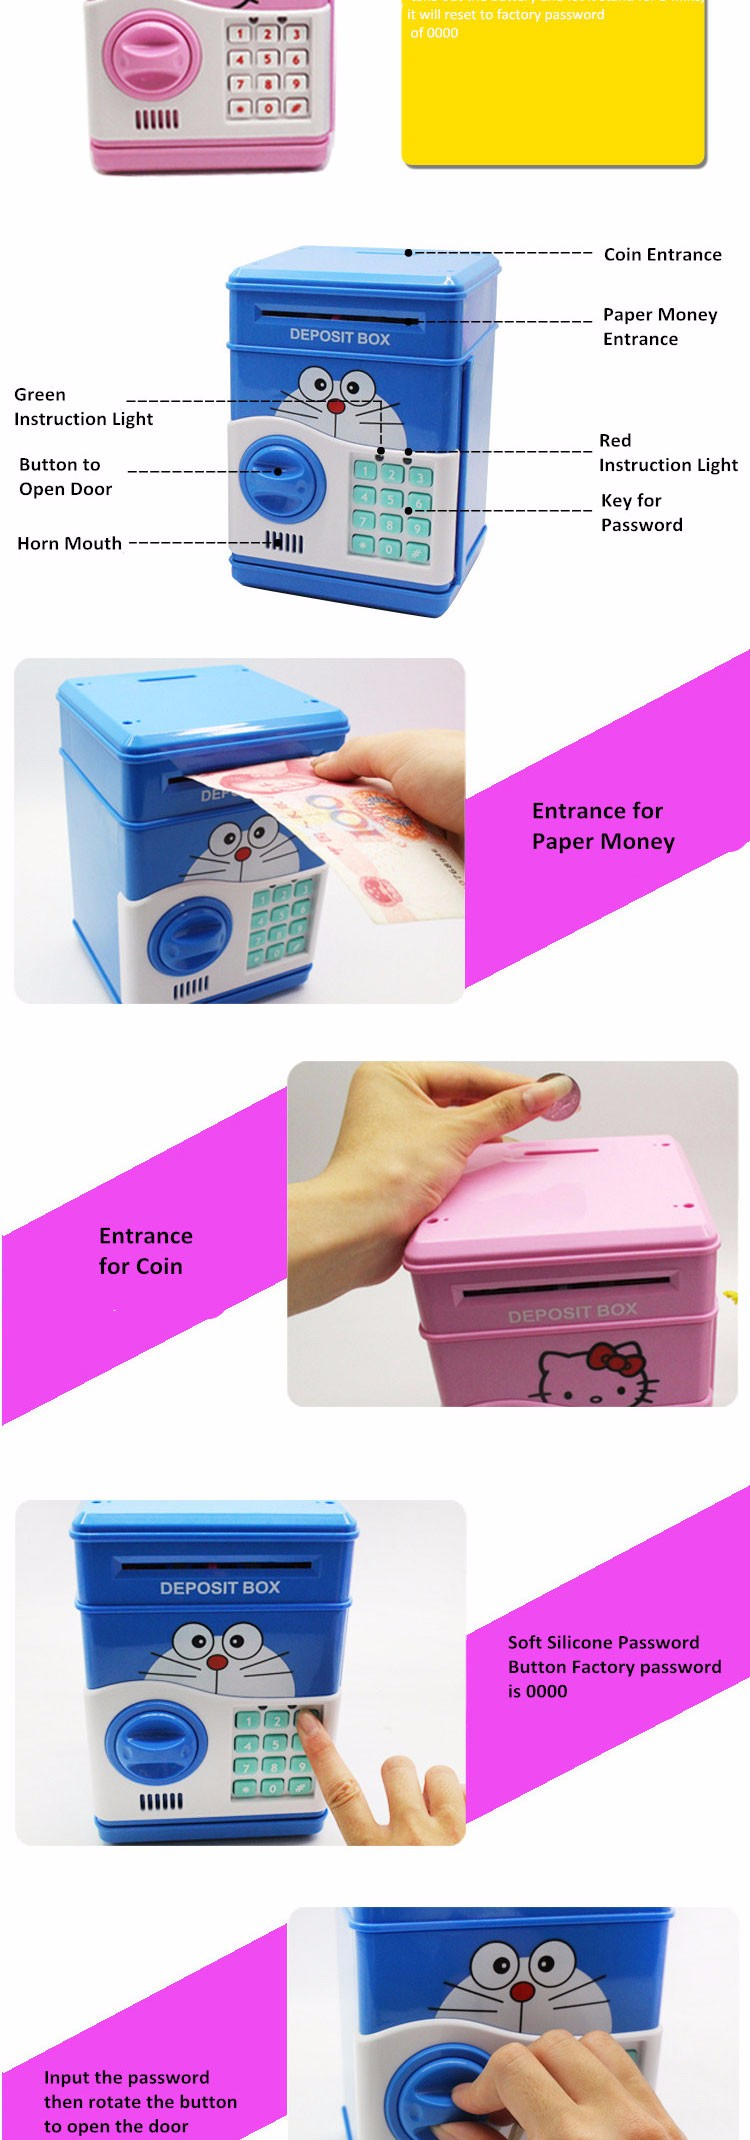 Hot Selling Plastic Intelligent ATM Money Saving Box Toys for Kids